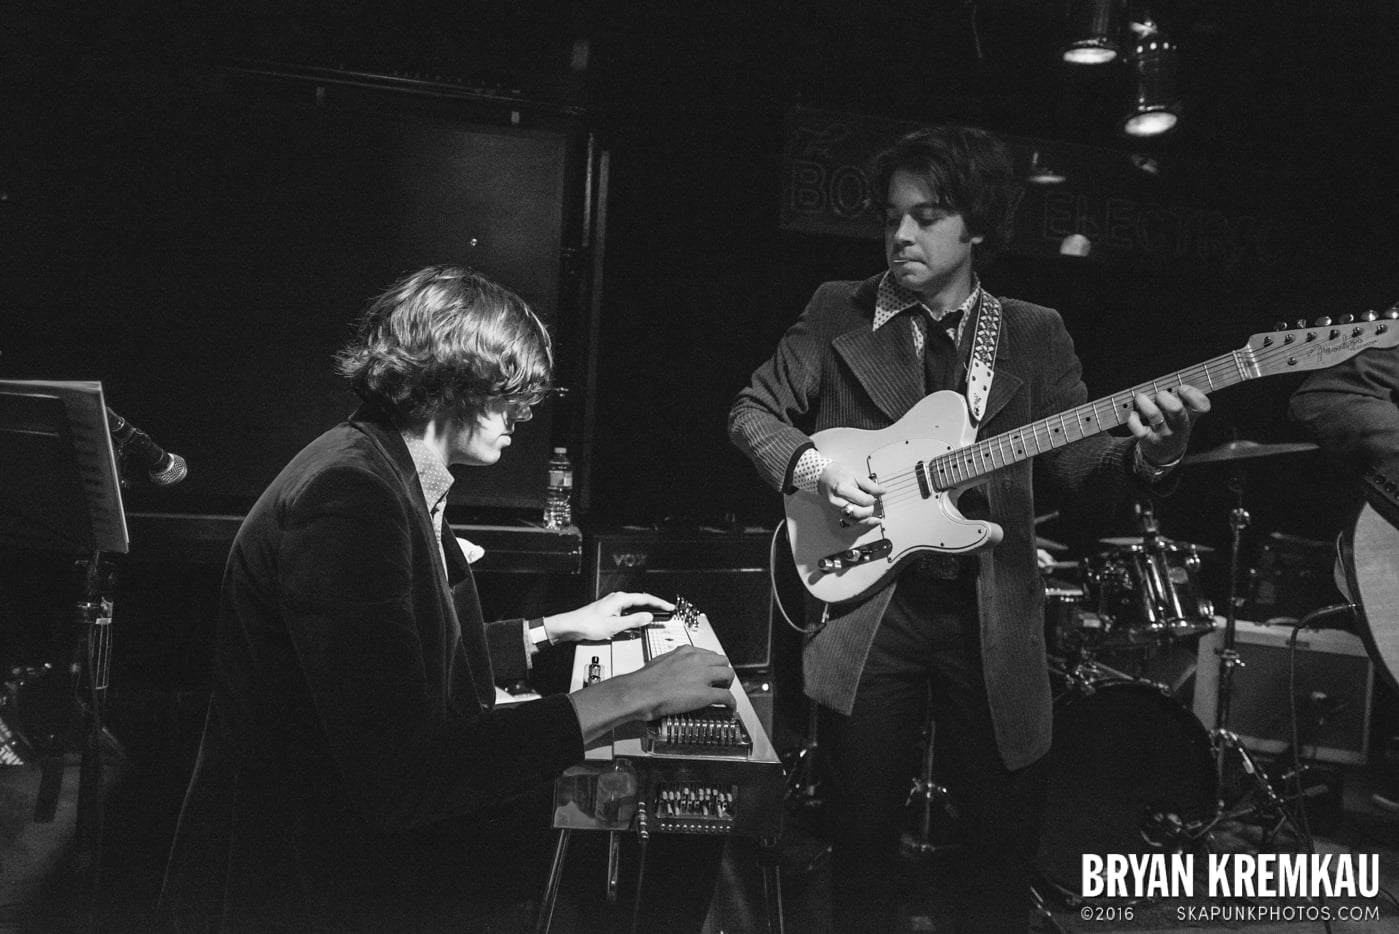 Trapper Schoepp & The Shades @ Bowery Electric, NYC - 11.20.14 (44)